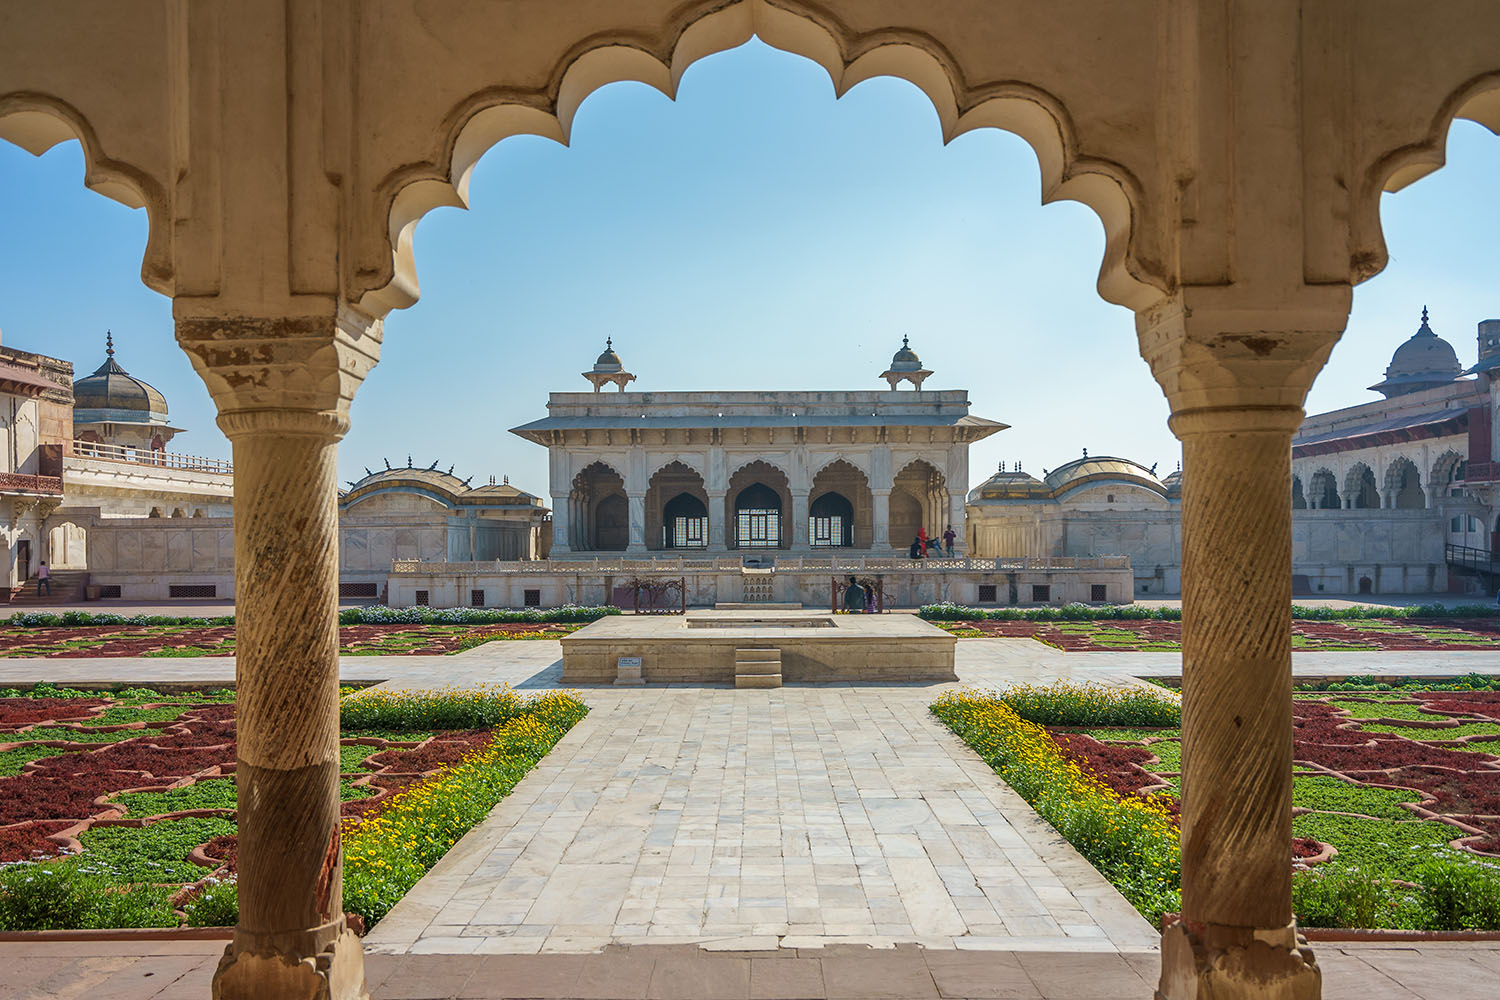 Looking into a courtyard at Agra Fort through a marble archway